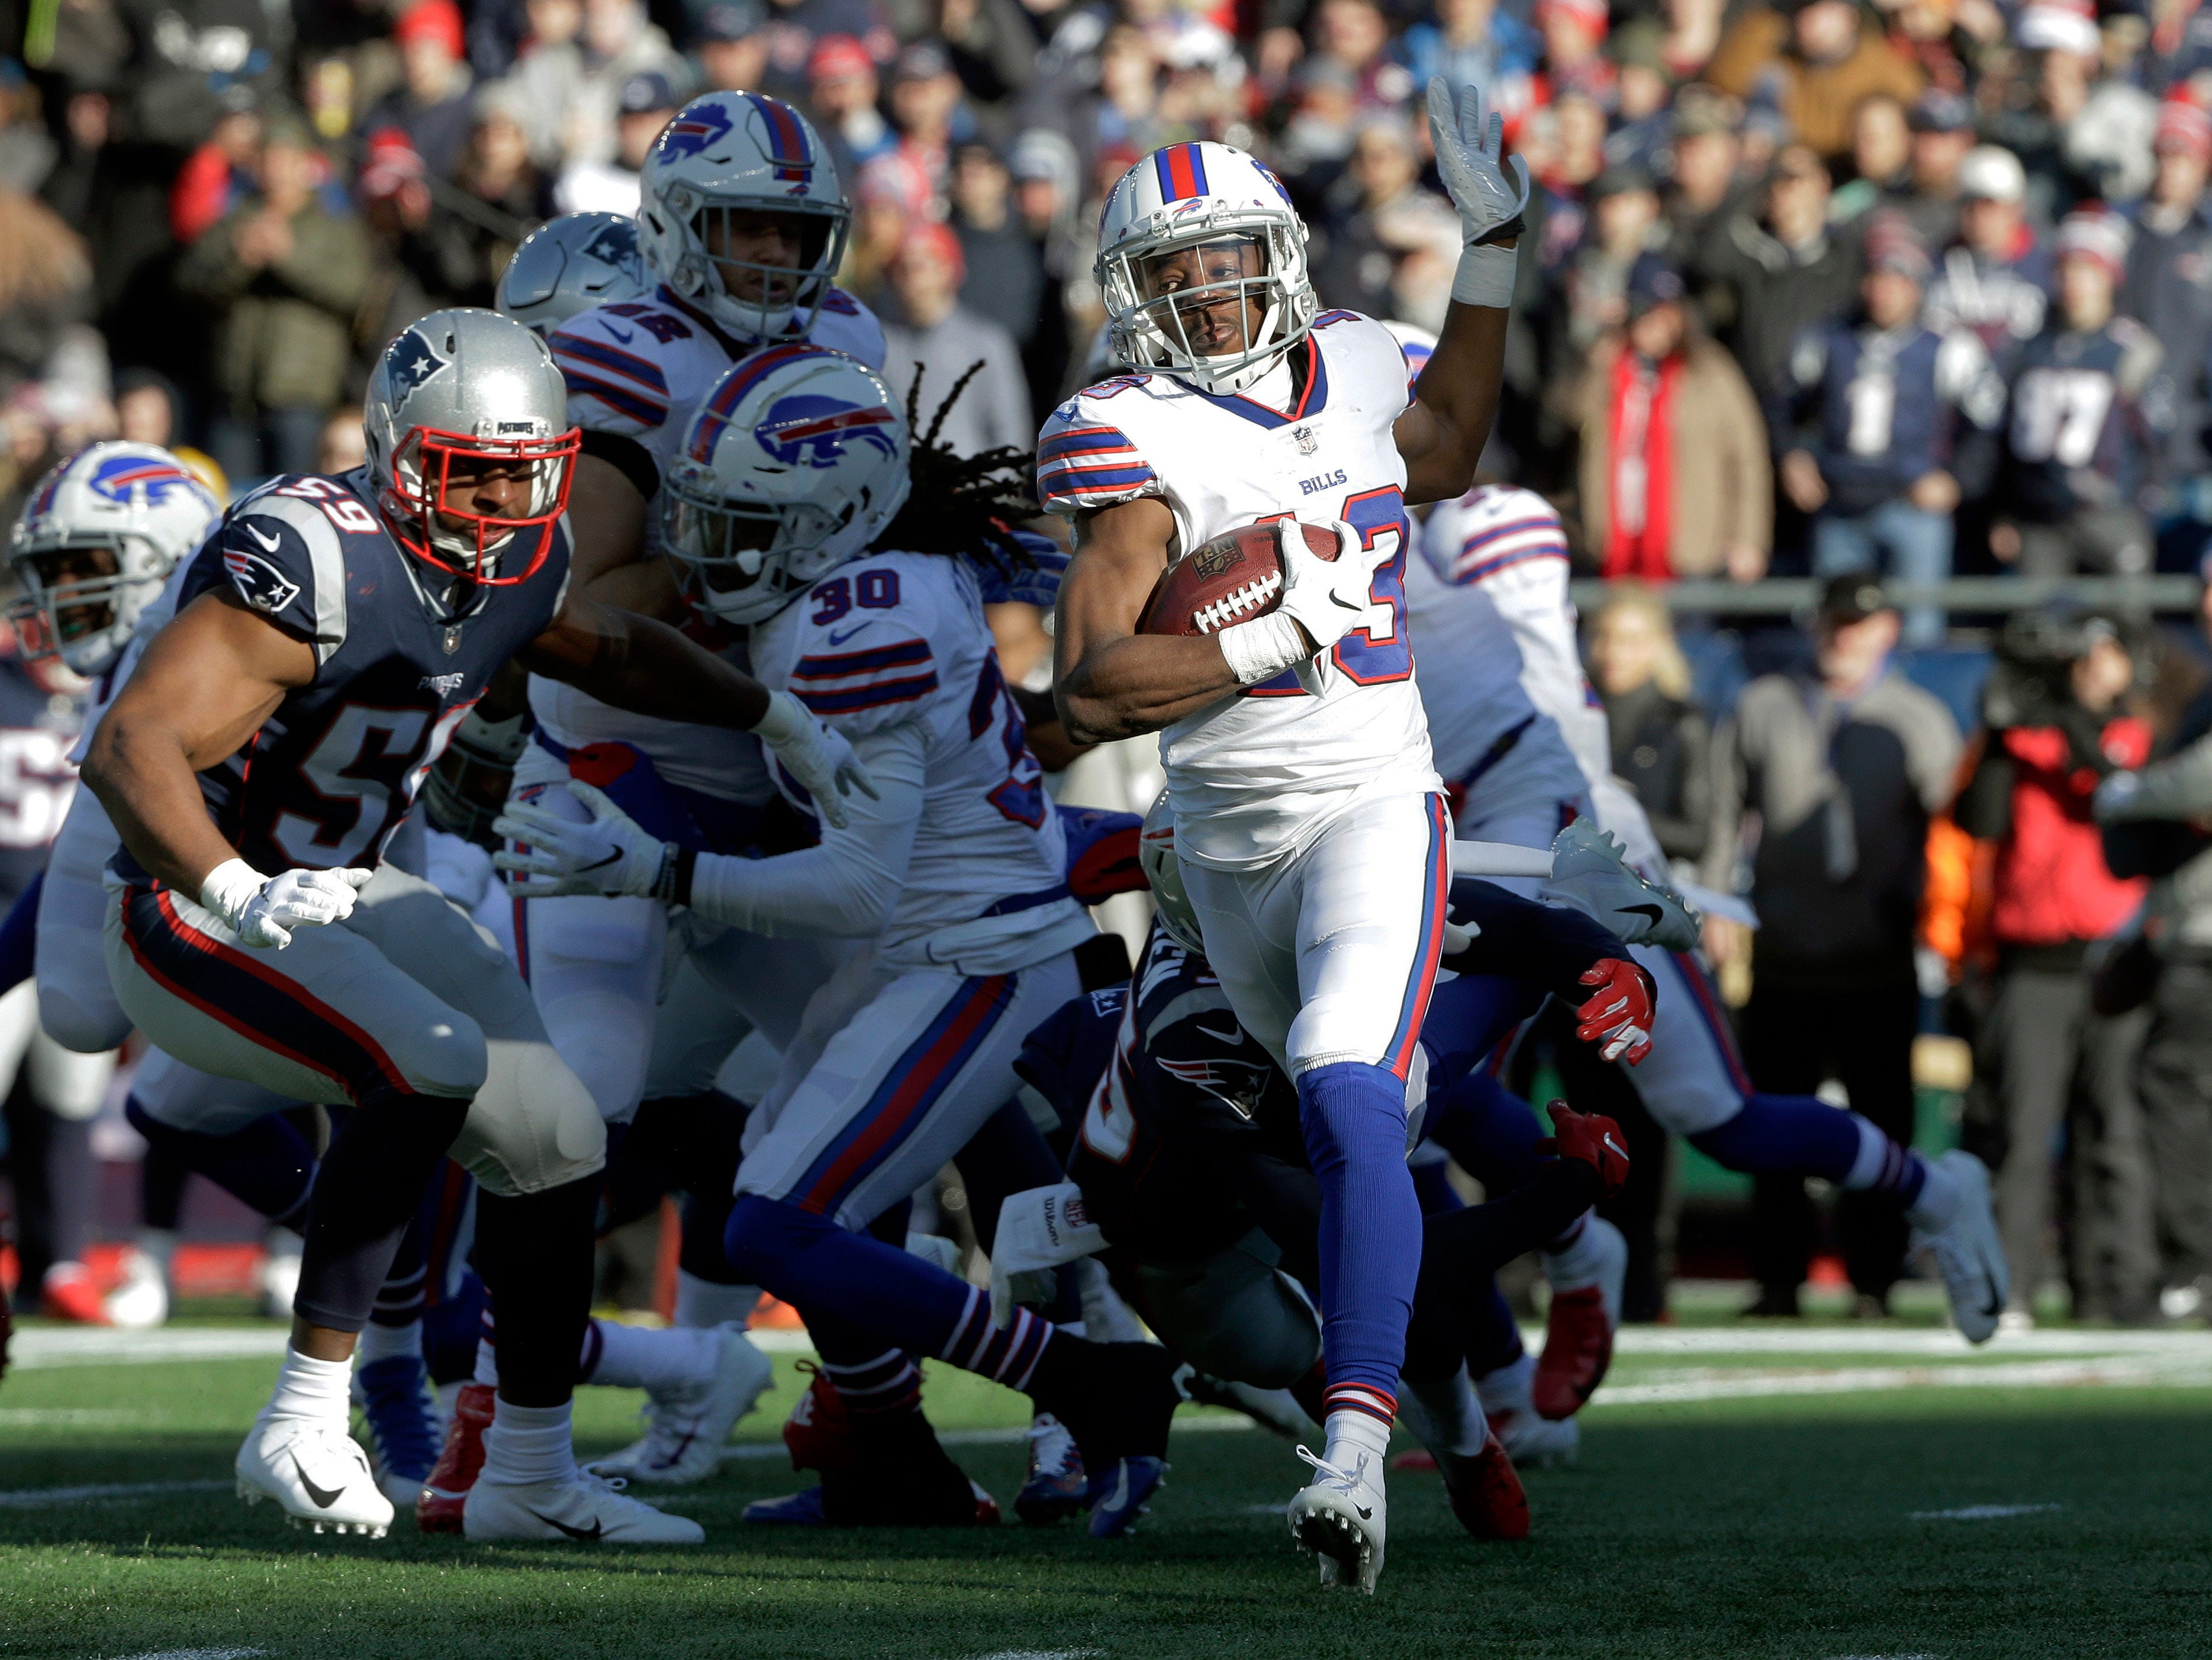 Buffalo Bills' Victor Bolden (13) returns the opening kickoff as New England Patriots linebacker Albert McClellan (59) gives chase during the first half of an NFL football game, Sunday, Dec. 23, 2018, in Foxborough, Mass. (AP Photo/Steven Senne)